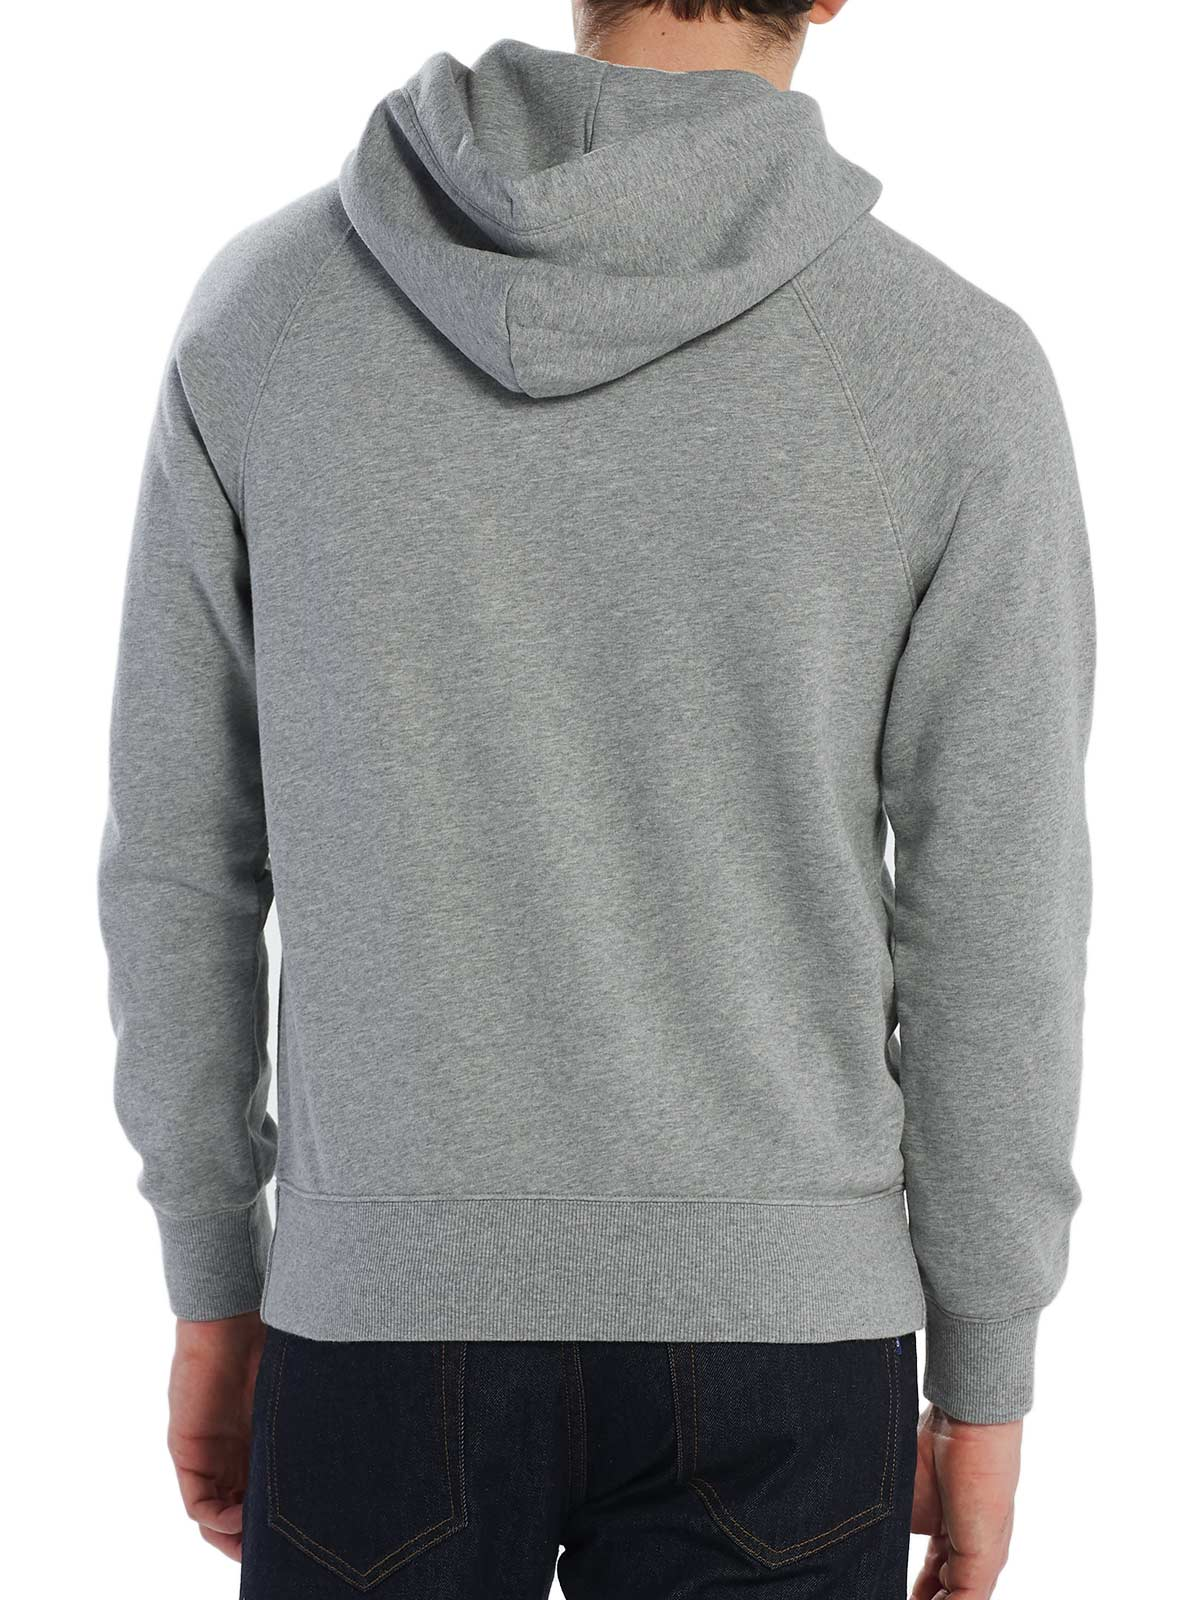 Picture of GANT | Men's Lock Up Hoodie Sweatshirt